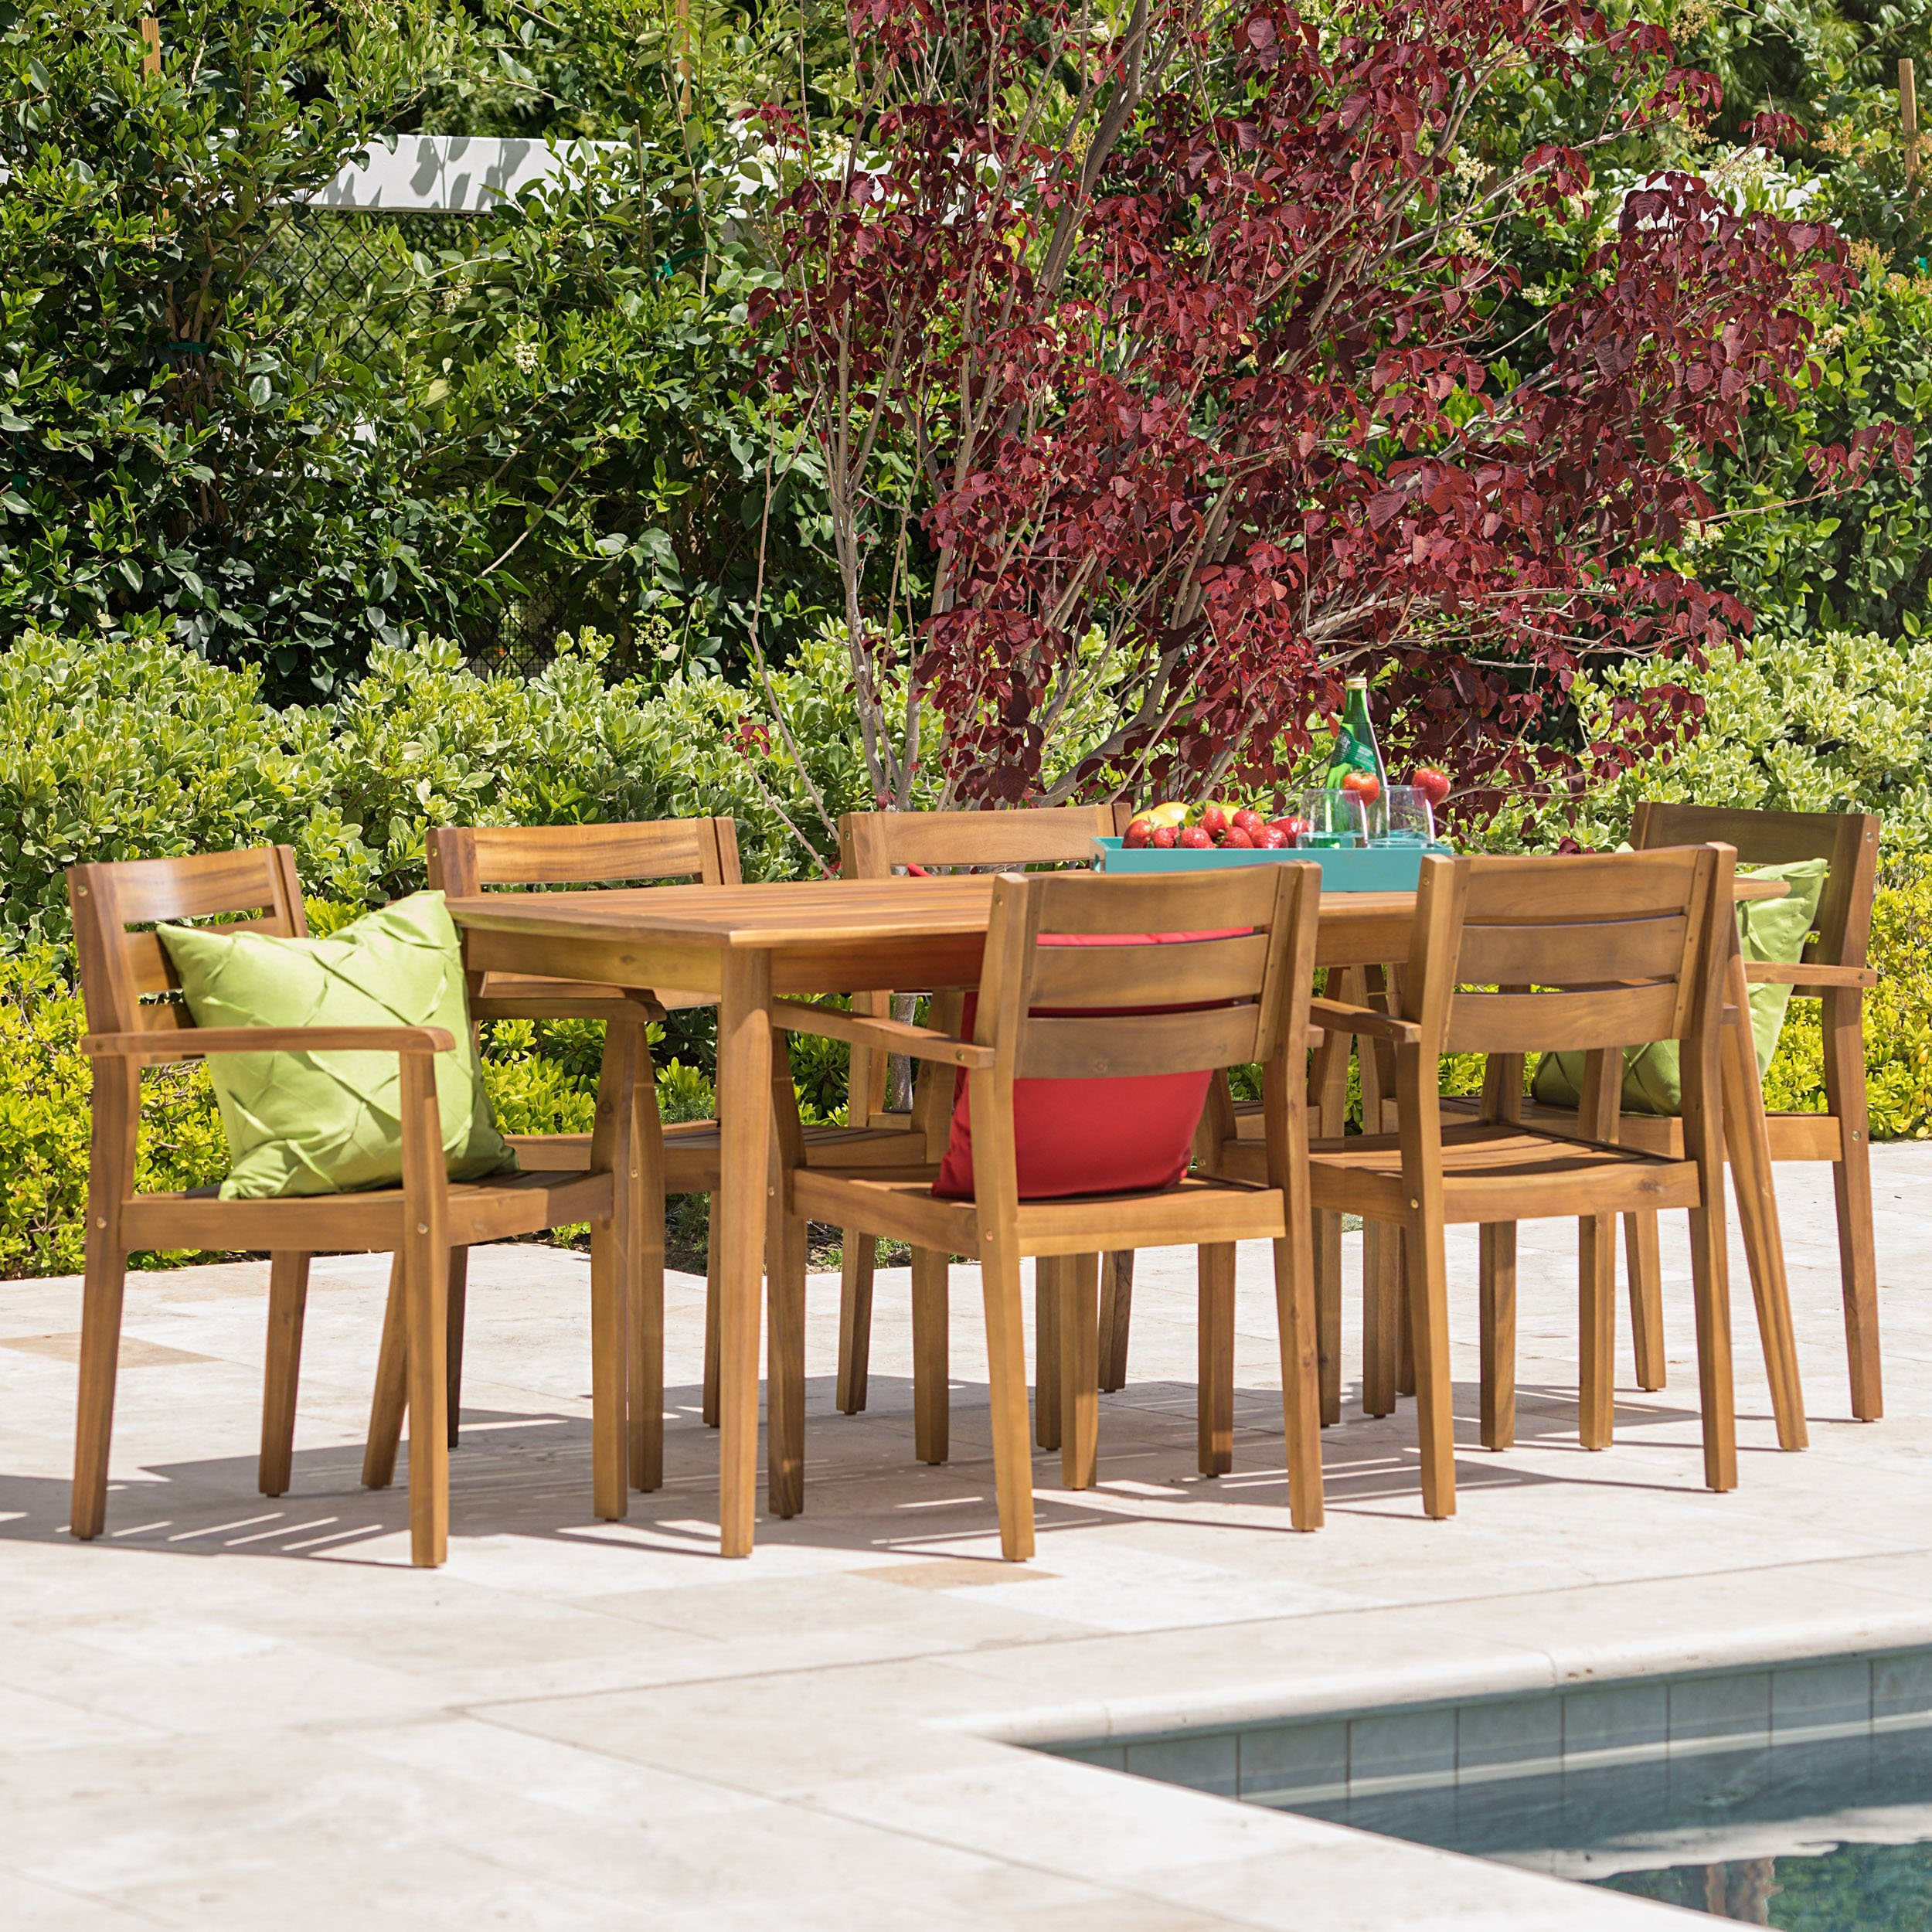 Stanyan | 7 Piece Outdoor Acacia Wood Dining Set | Perfect for Patio | with Teak Finish by GDF Studio